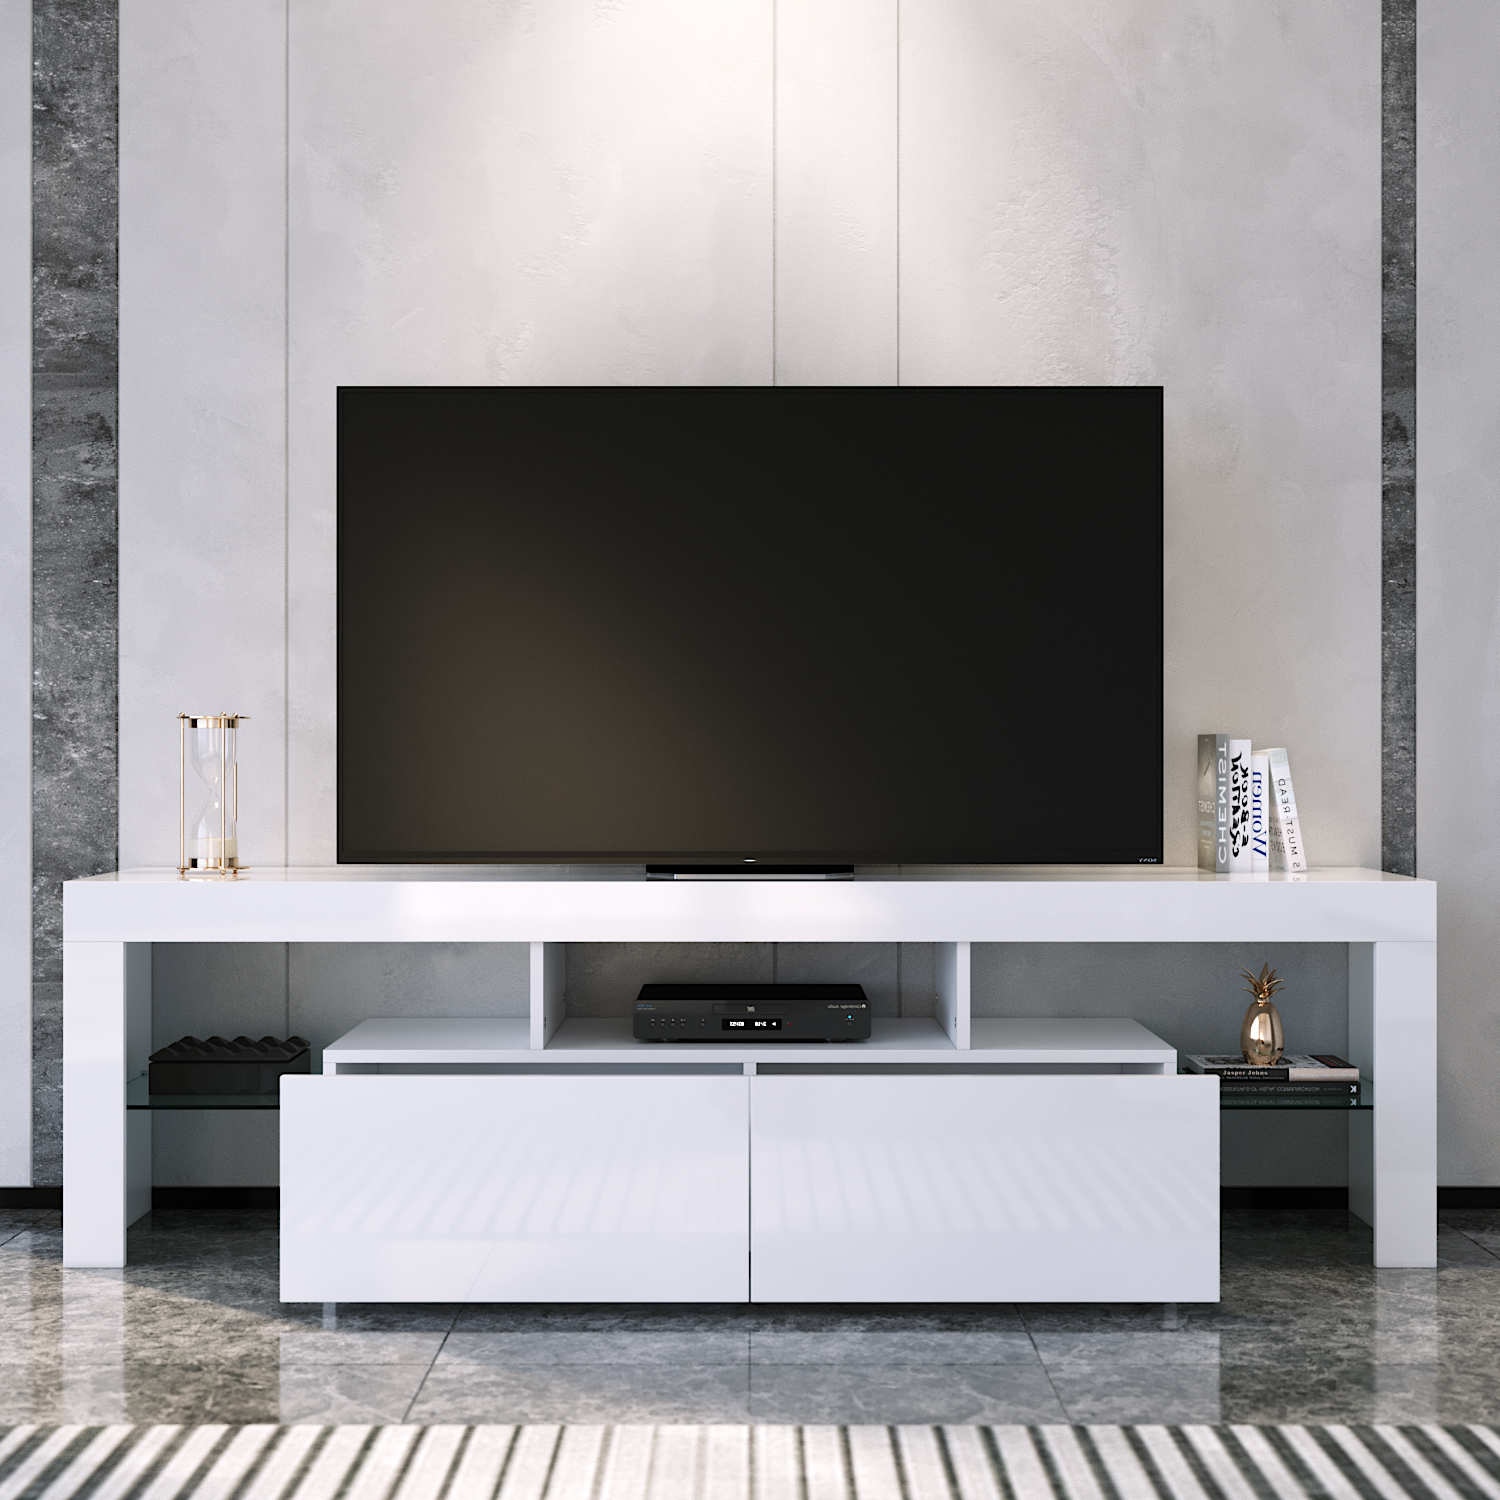 Modern 160cm Tv Unit Stand Matt Body & High Gloss Doors Intended For Current 57'' Led Tv Stands With Rgb Led Light And Glass Shelves (View 2 of 10)